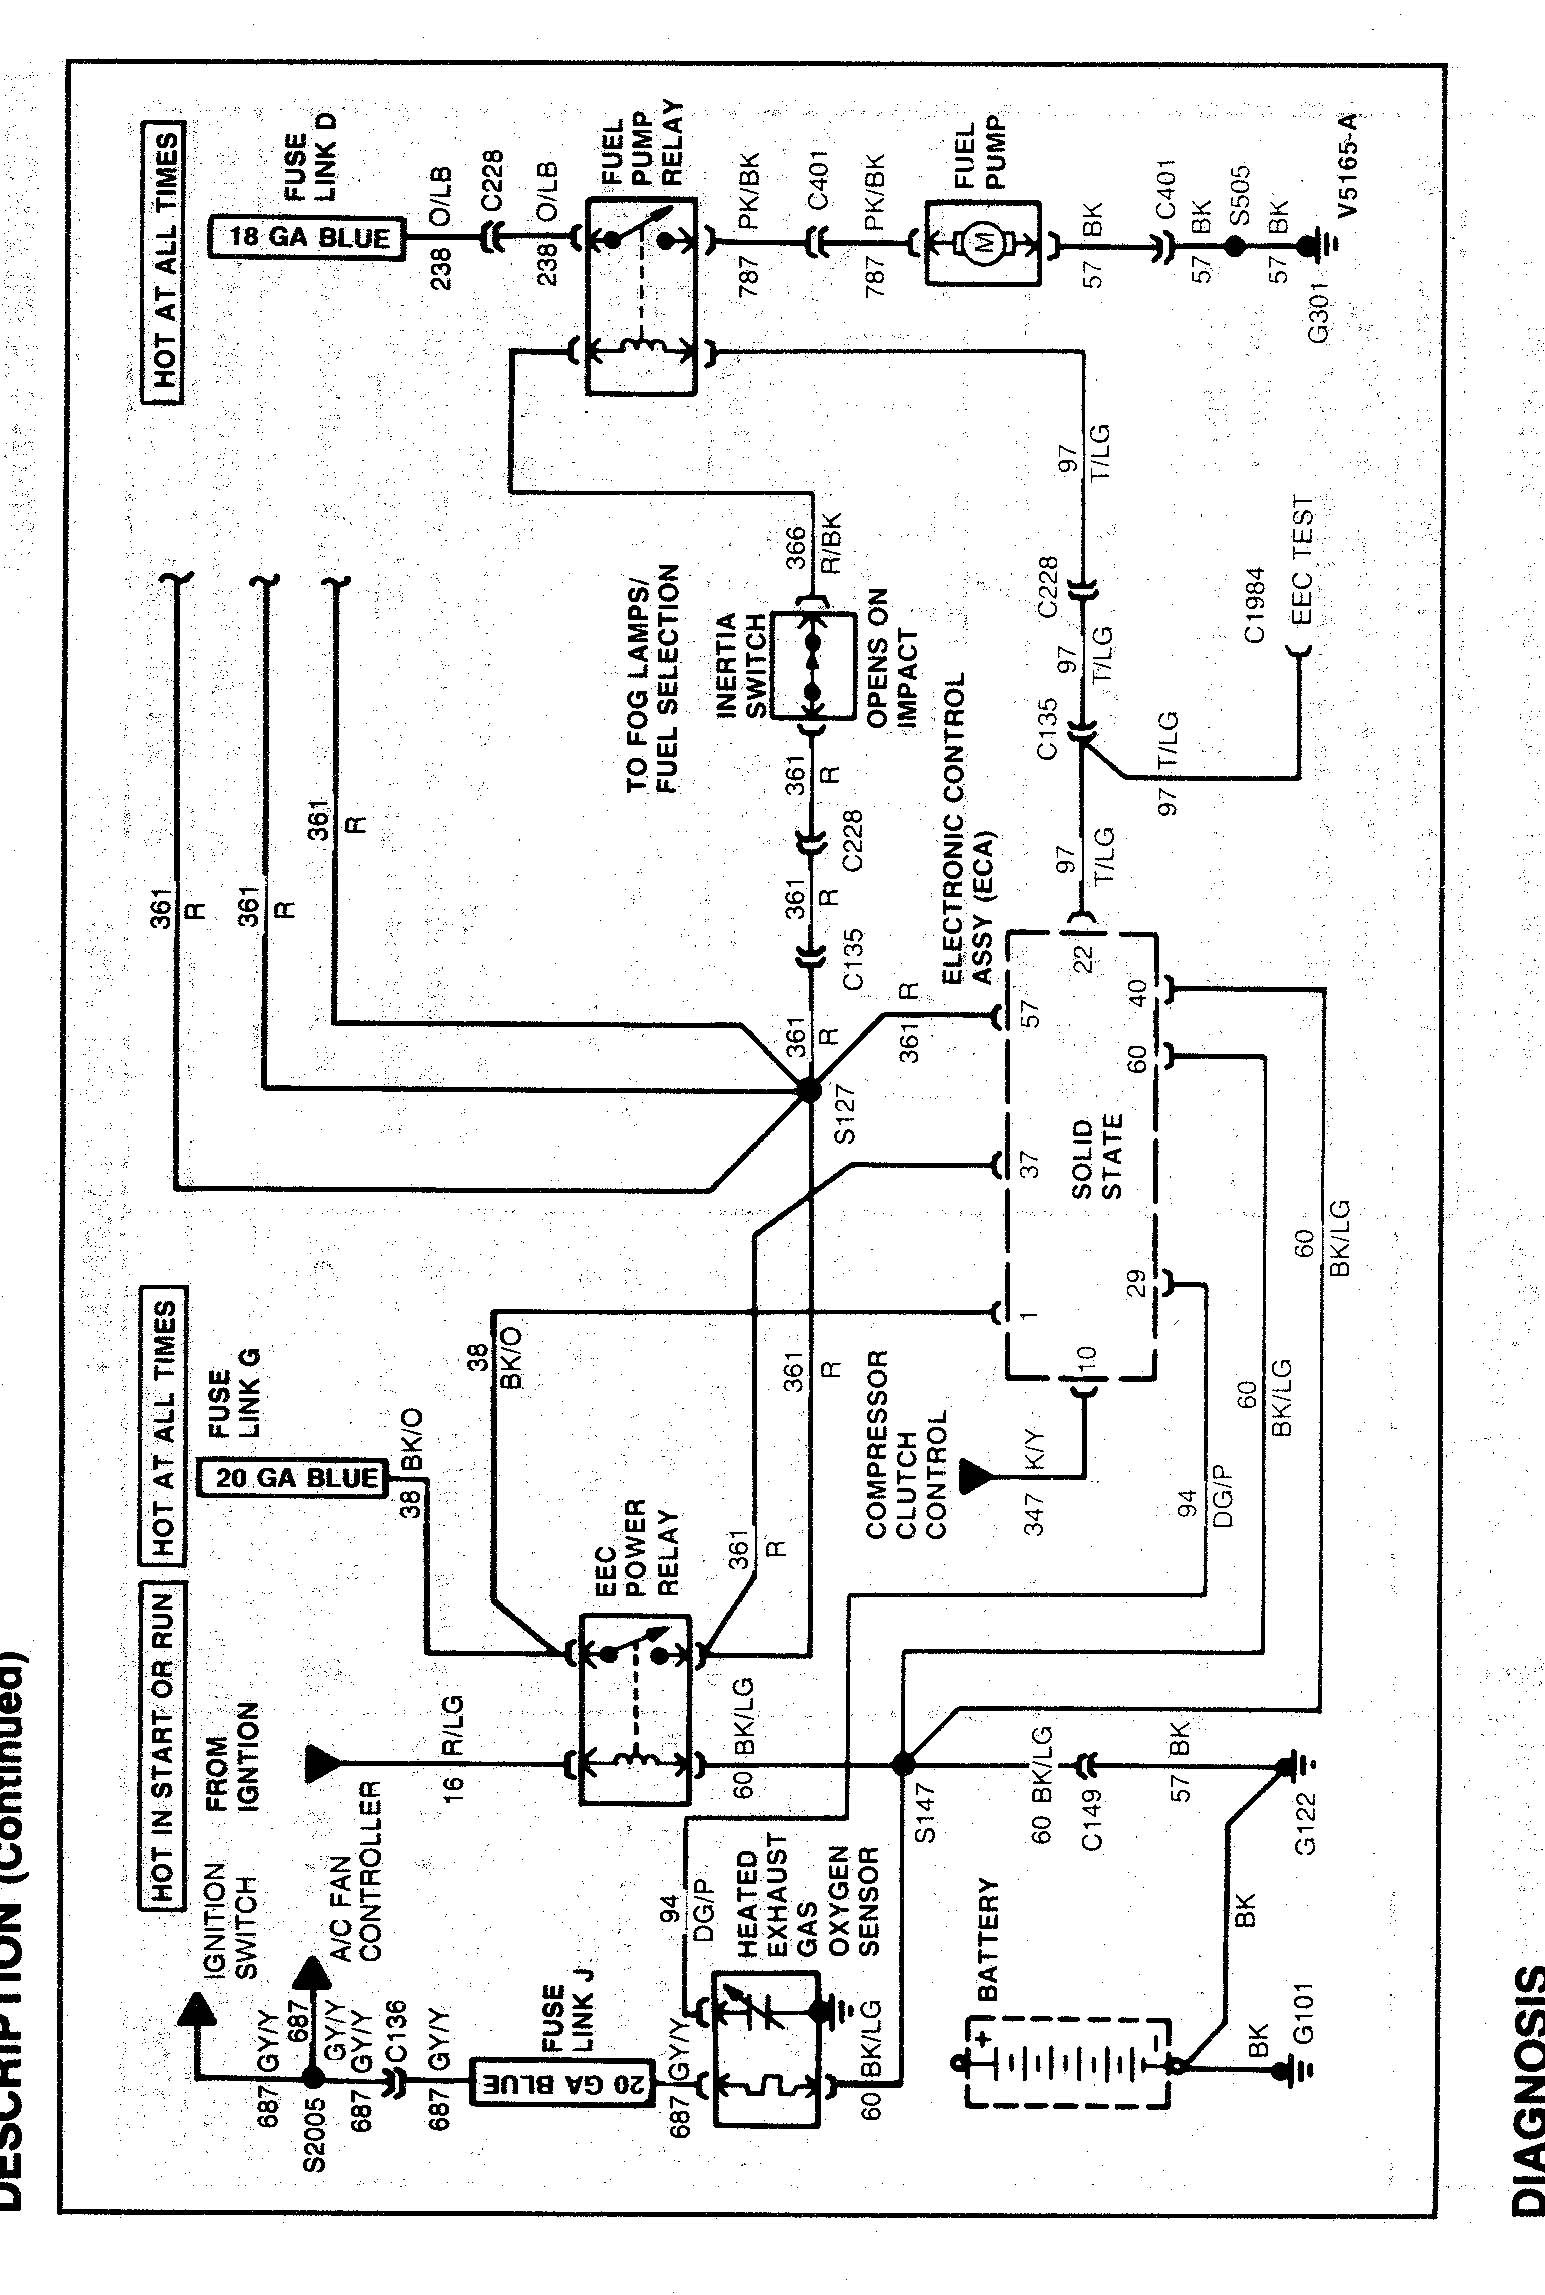 1928d1051592166 may electrical fuel pump but mustangfuelelectricaldiagram2 eec relay wire mustangforums com ford inertia switch wiring diagram at suagrazia.org